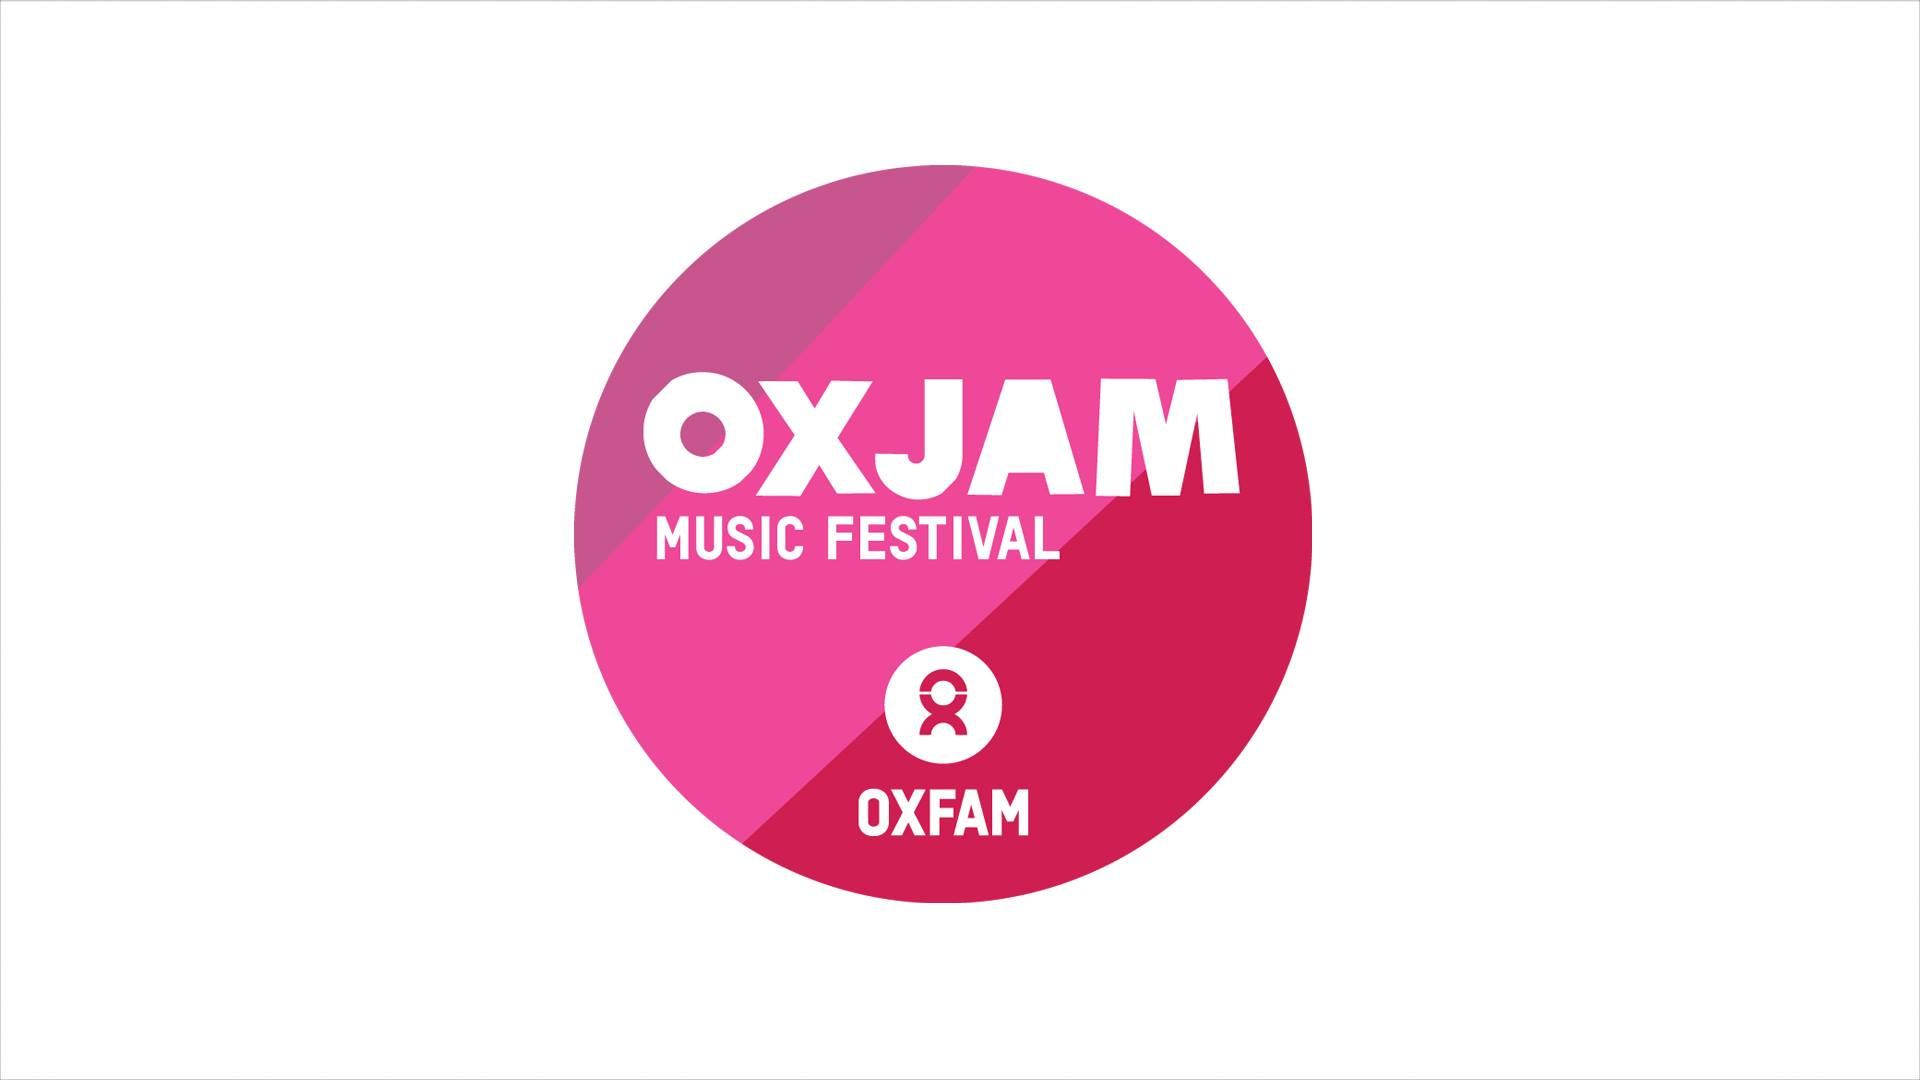 Oxjam Edinburgh is part of the Oxjam Music Festival